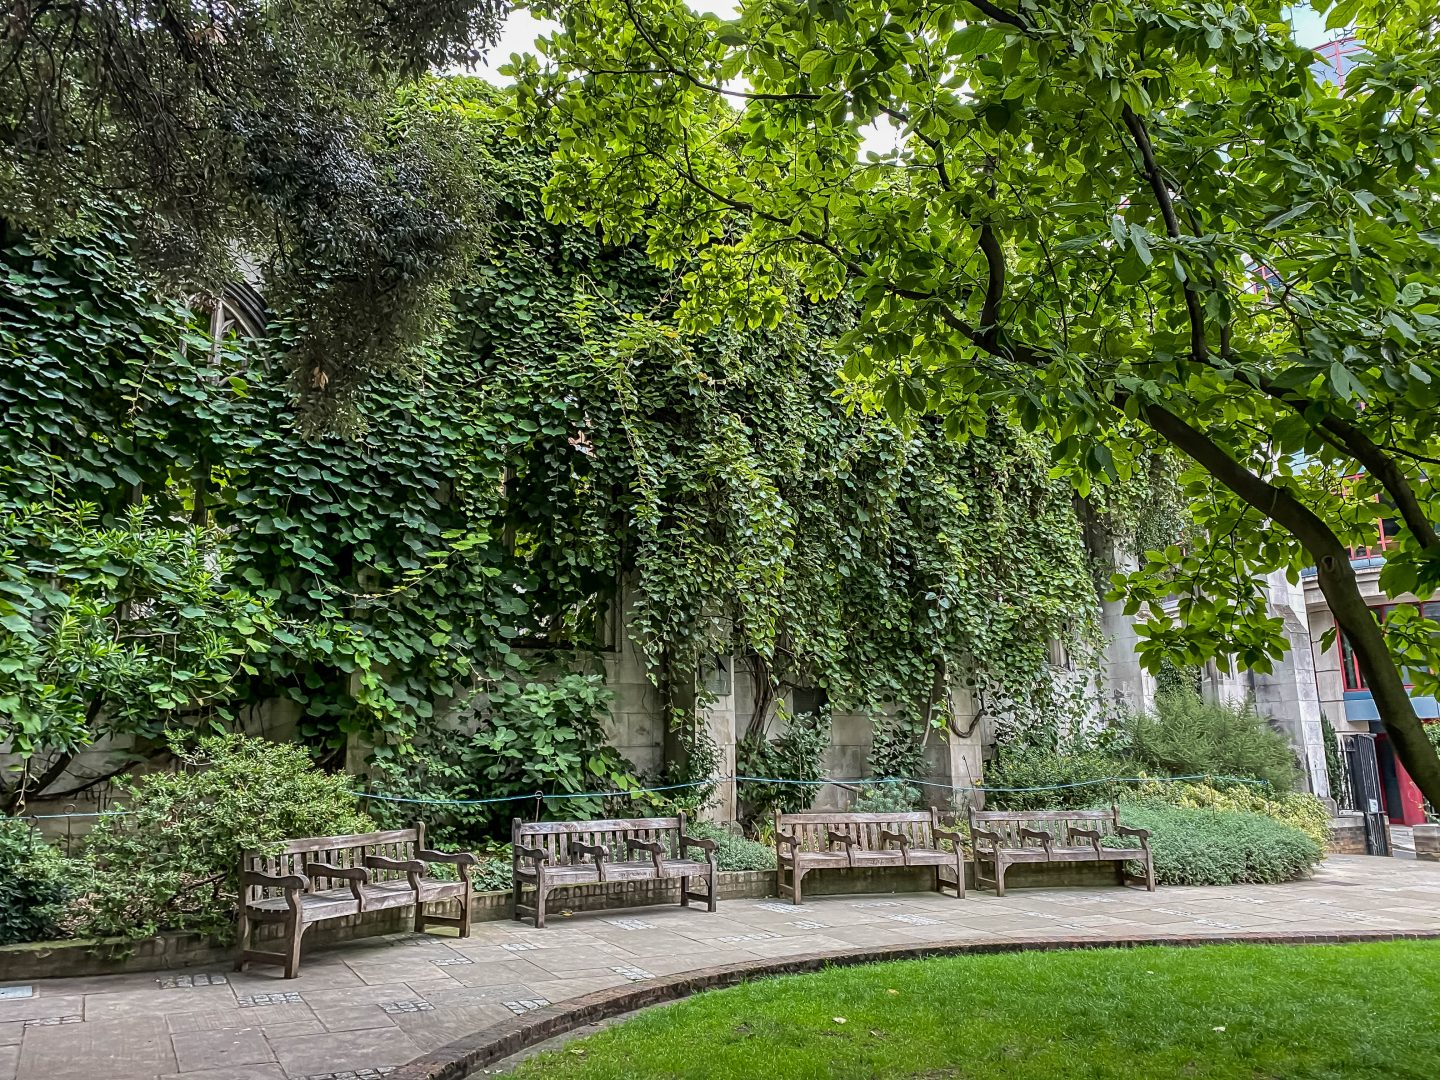 Explore the hidden ruins of St Dunstan-in-the-East in London